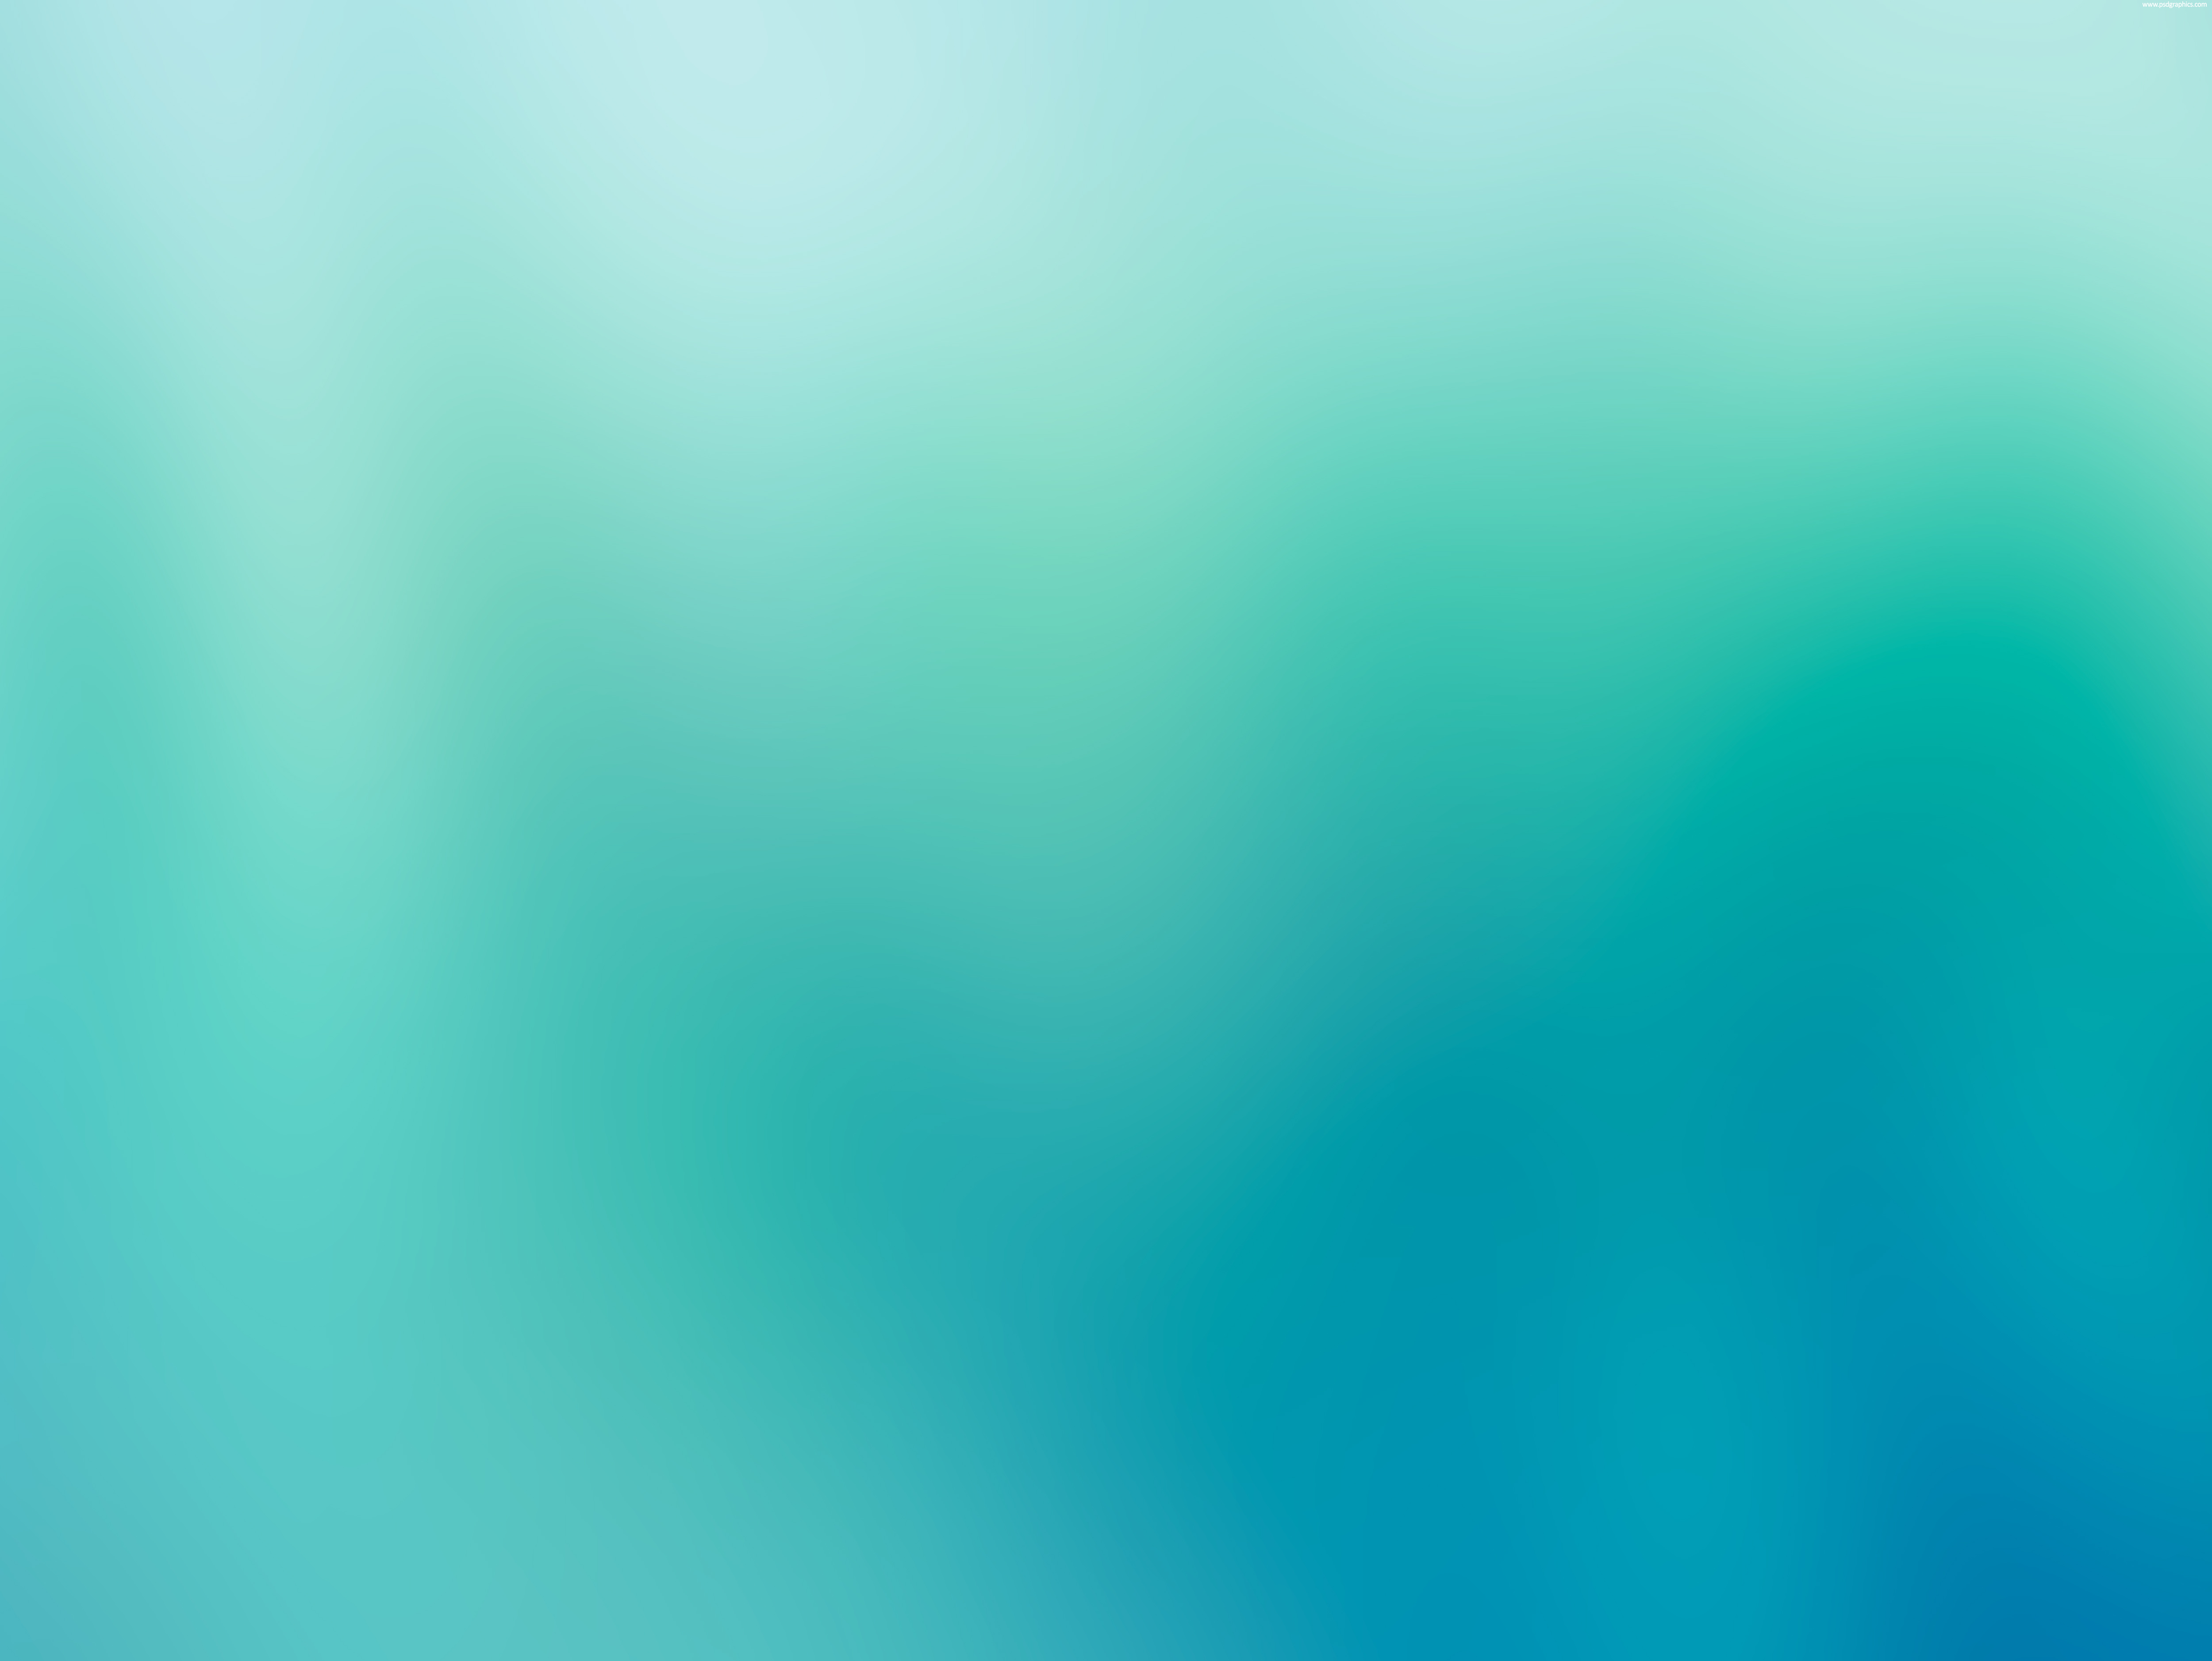 Turquoise Background Turquoise Blur